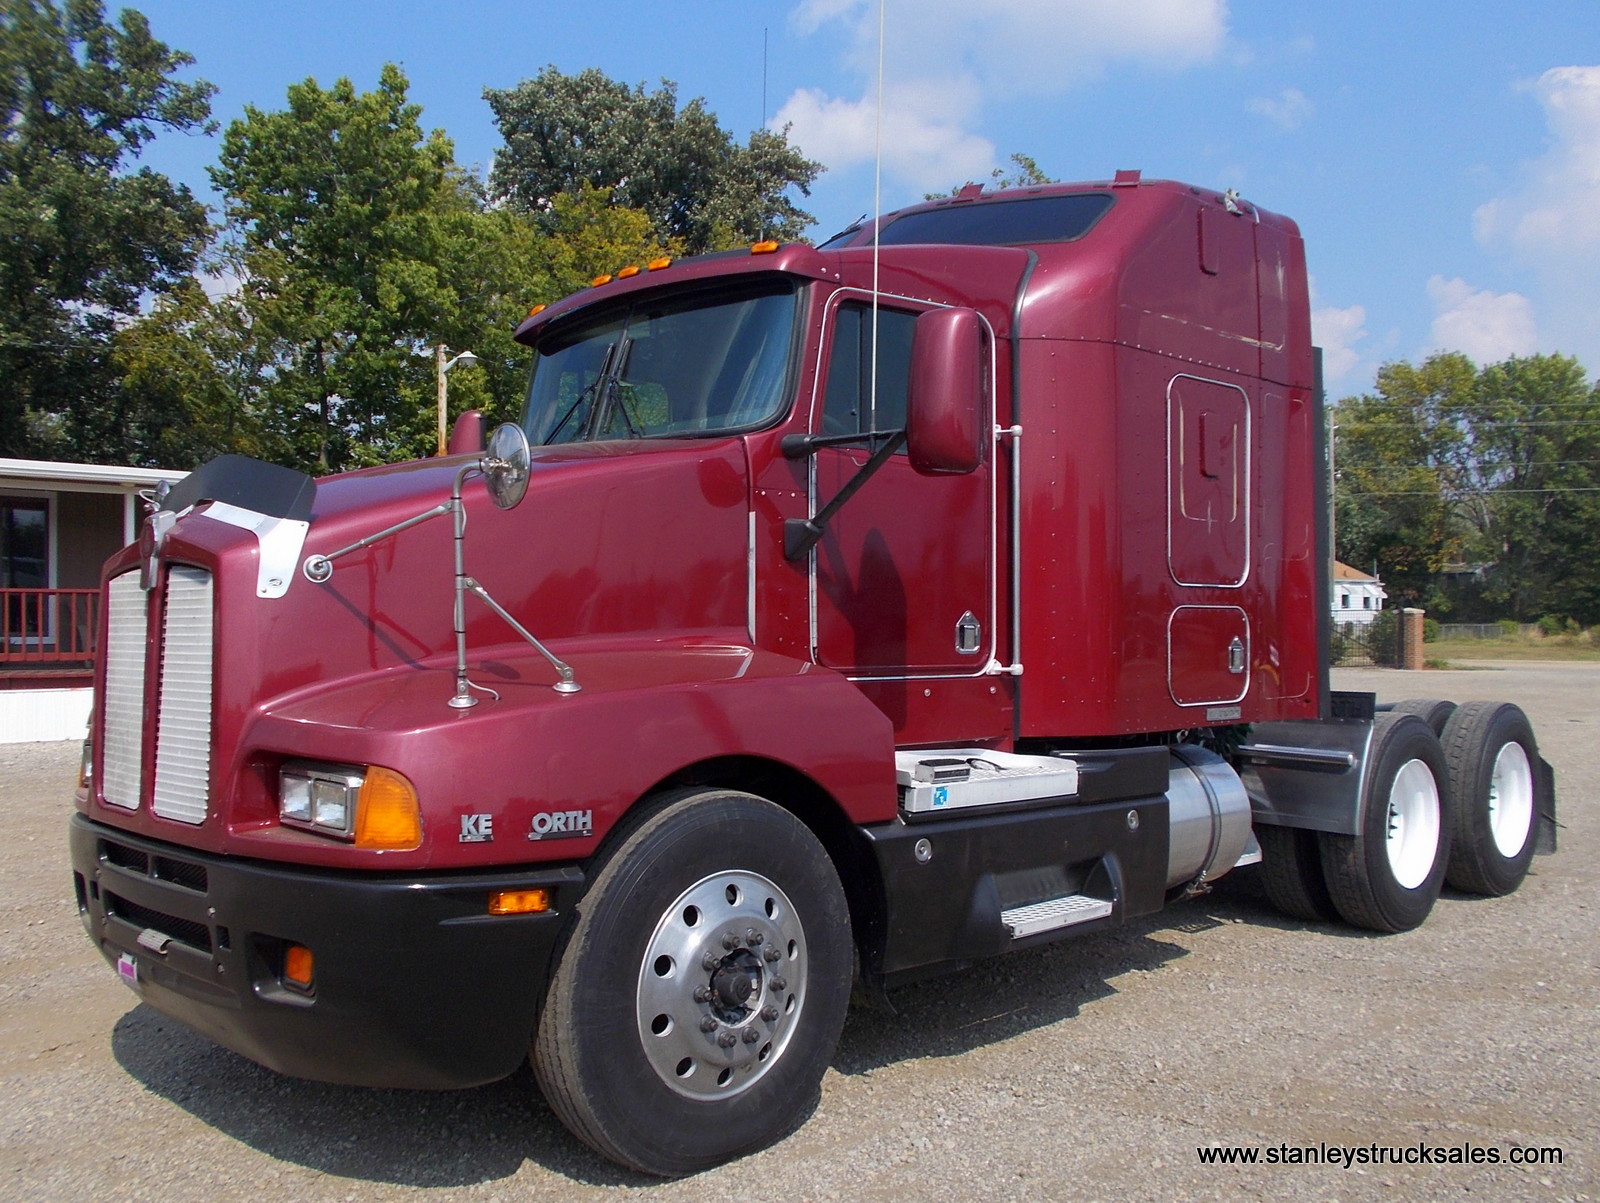 28 owners manual for a 2002 kenworth t600 kenworth t600 owners manual for a 2002 kenworth t600 kenworth t600 aerocab 2005 images owners manual for a 2002 kenworth sciox Choice Image